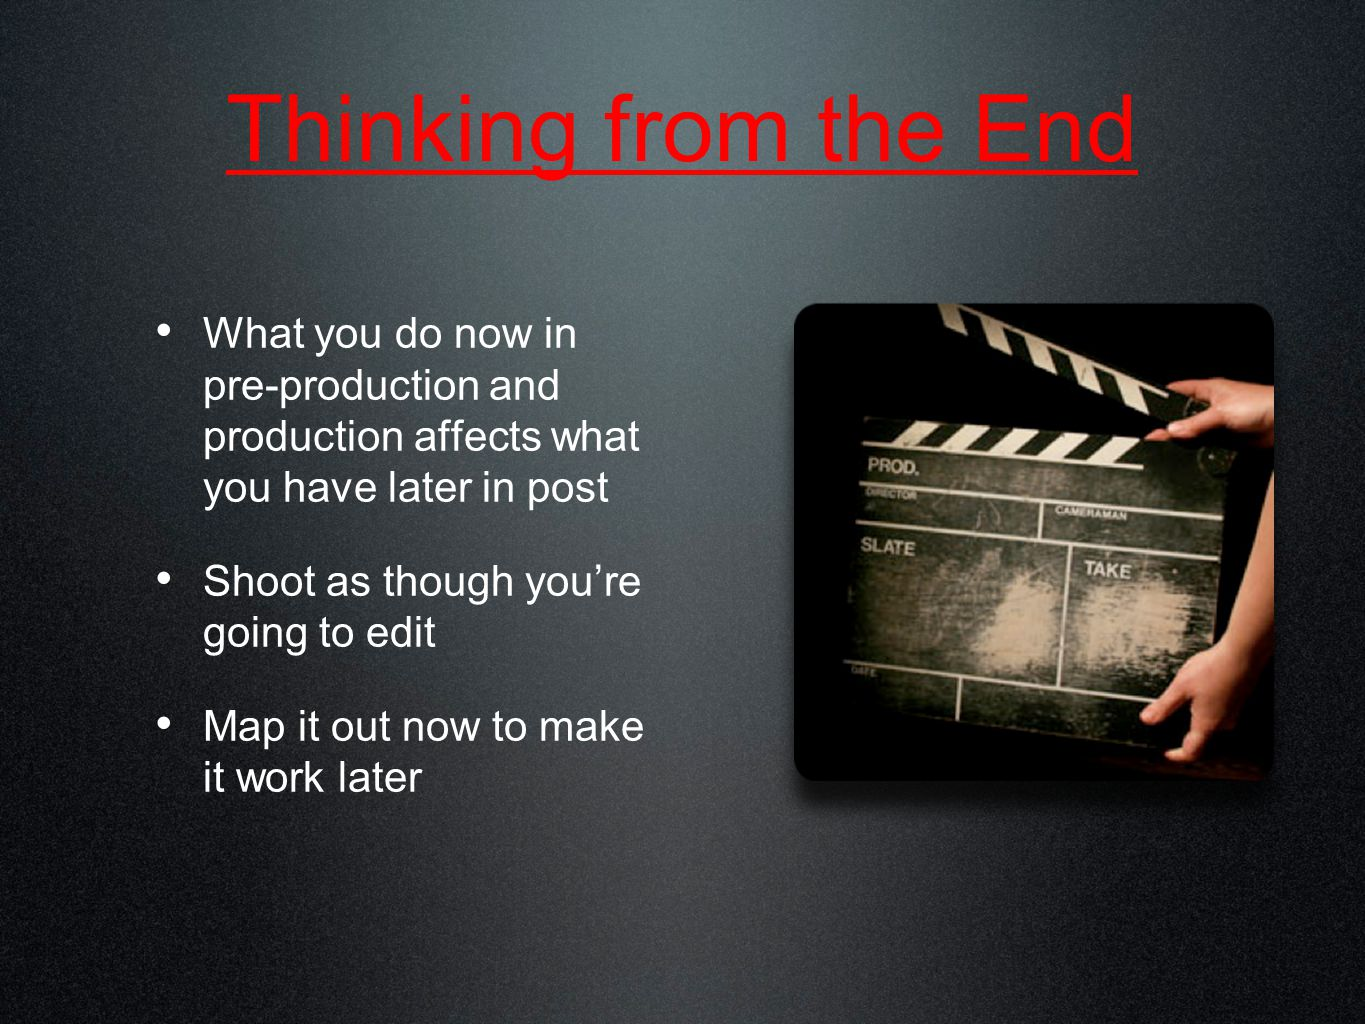 Thinking from the End What you do now in pre-production and production affects what you have later in post Shoot as though you're going to edit Map it out now to make it work later